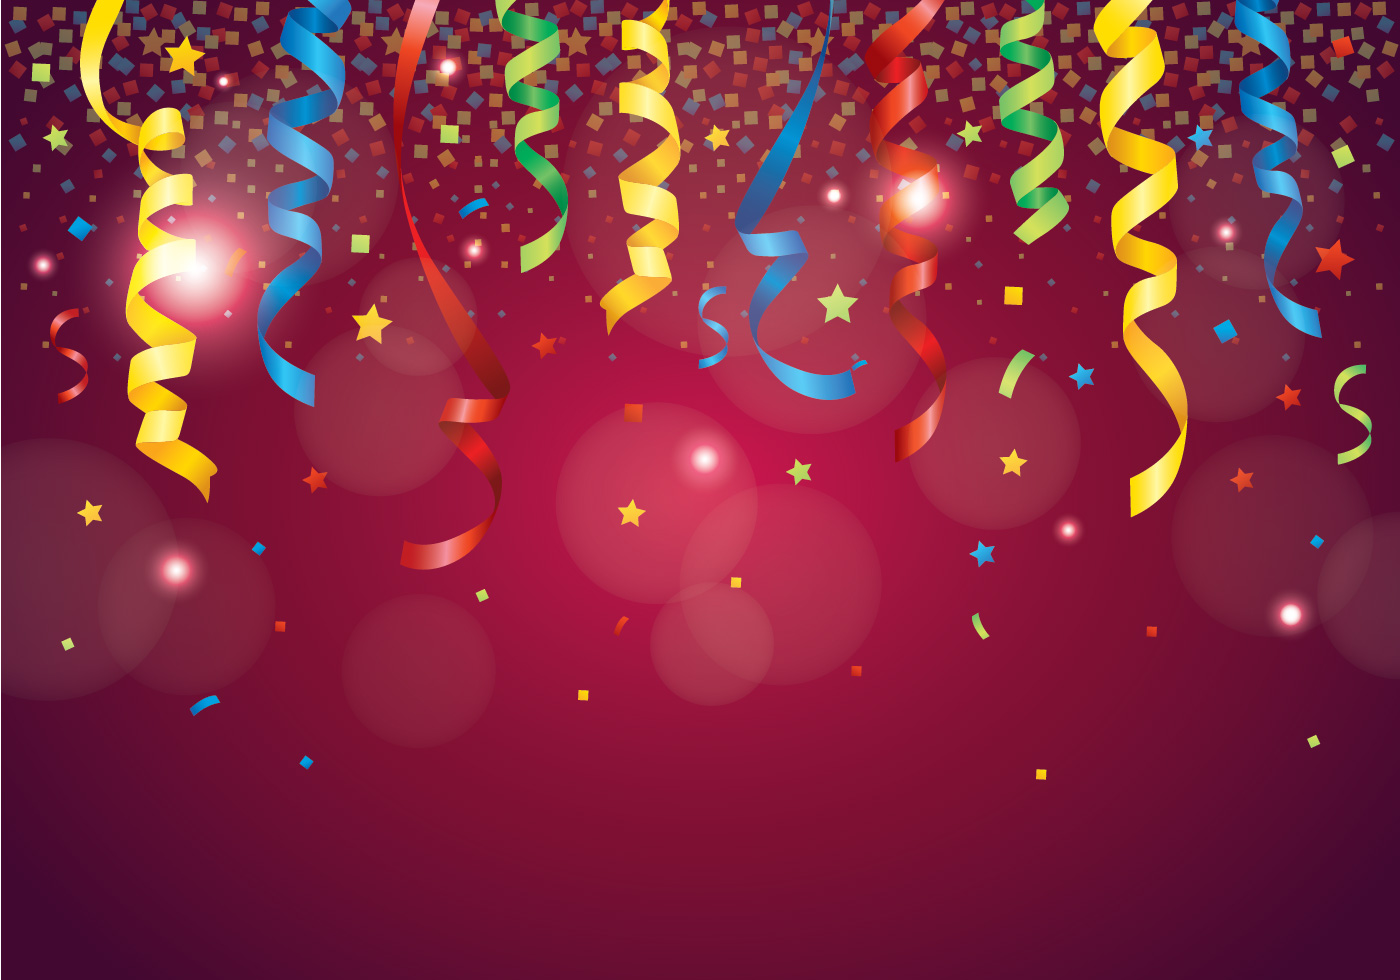 red-party-popper-background-vector.jpg